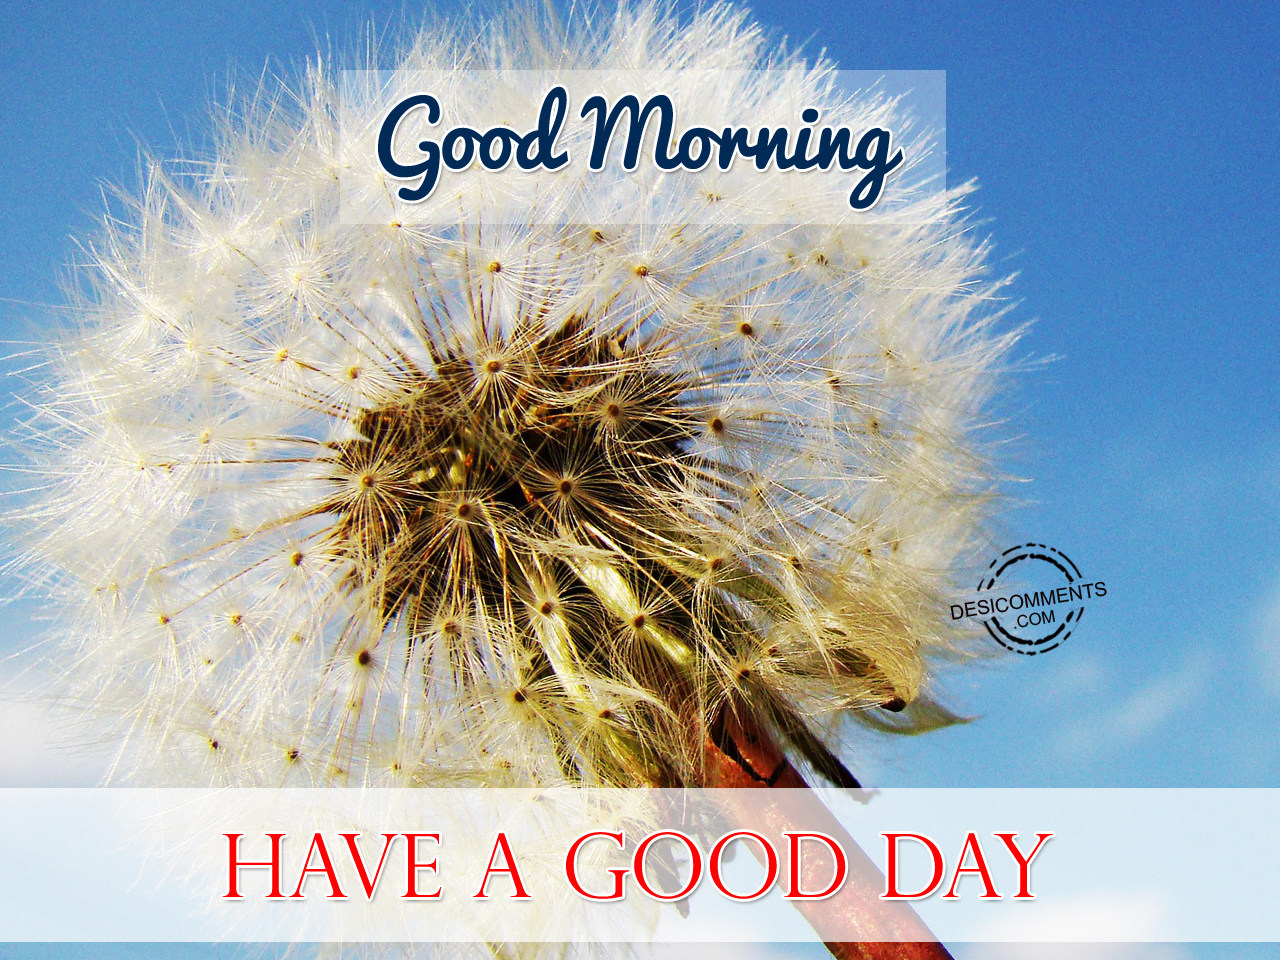 Good Morning Have A Good Day - DesiComments.com Have A Good Day